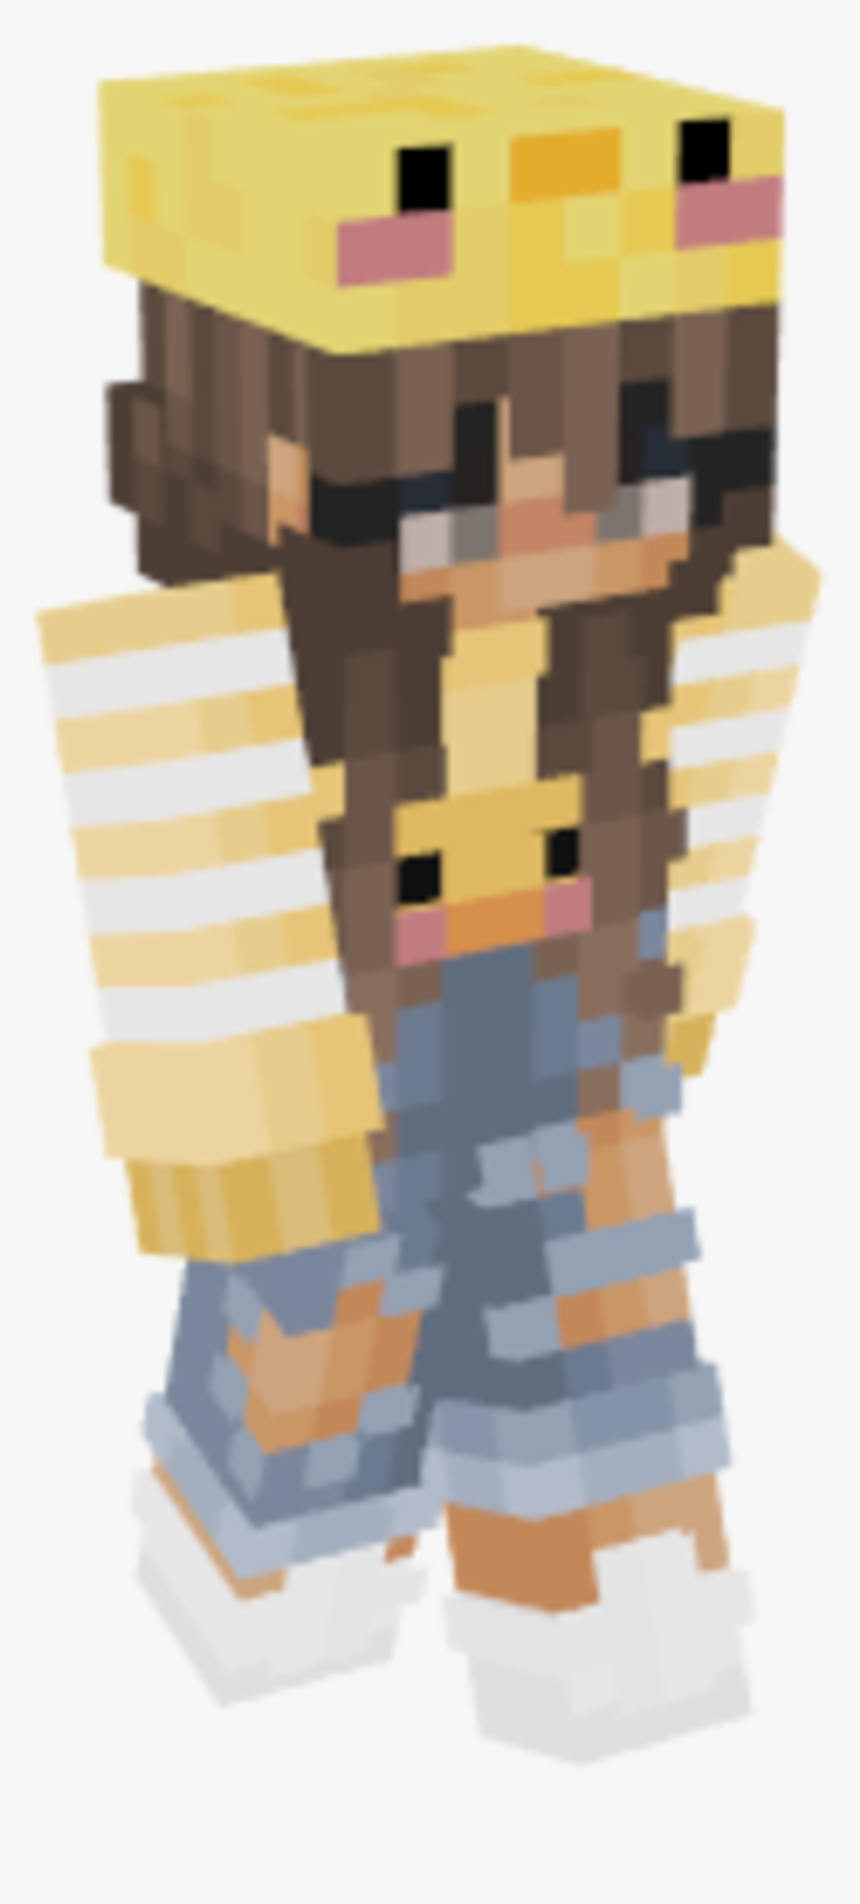 Cool Treding Minecraft Skins, HD Png Download, Free Download